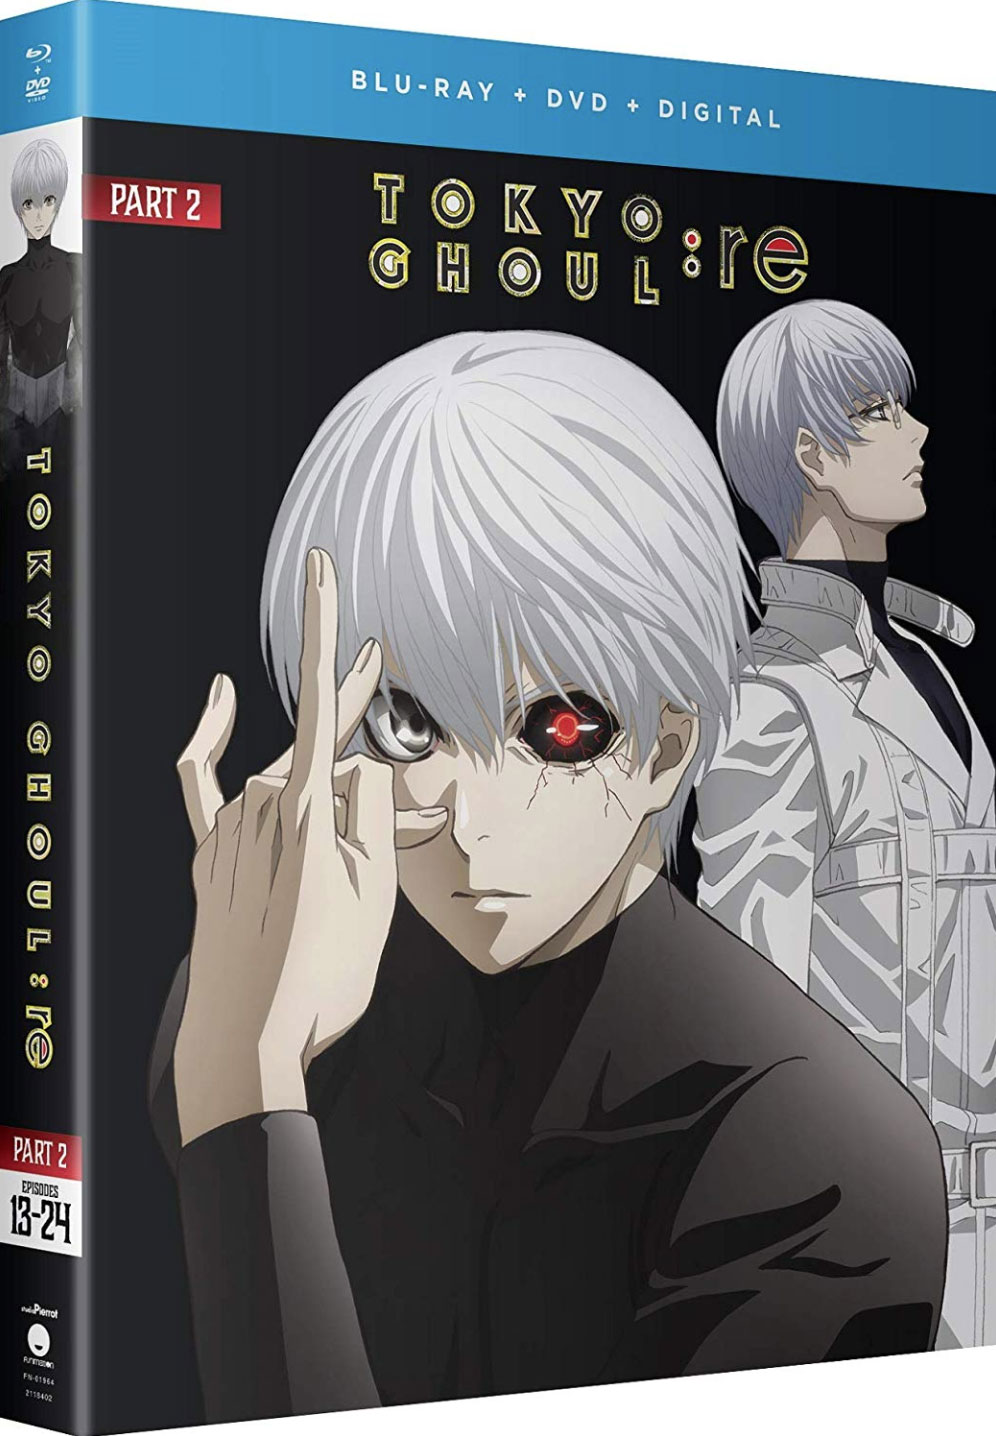 Tokyo Ghoul Re Ep 1 : tokyo, ghoul, Achetez, BluRay, Tokyo, Ghoul, Blu-Ray/DVD, Archonia.com